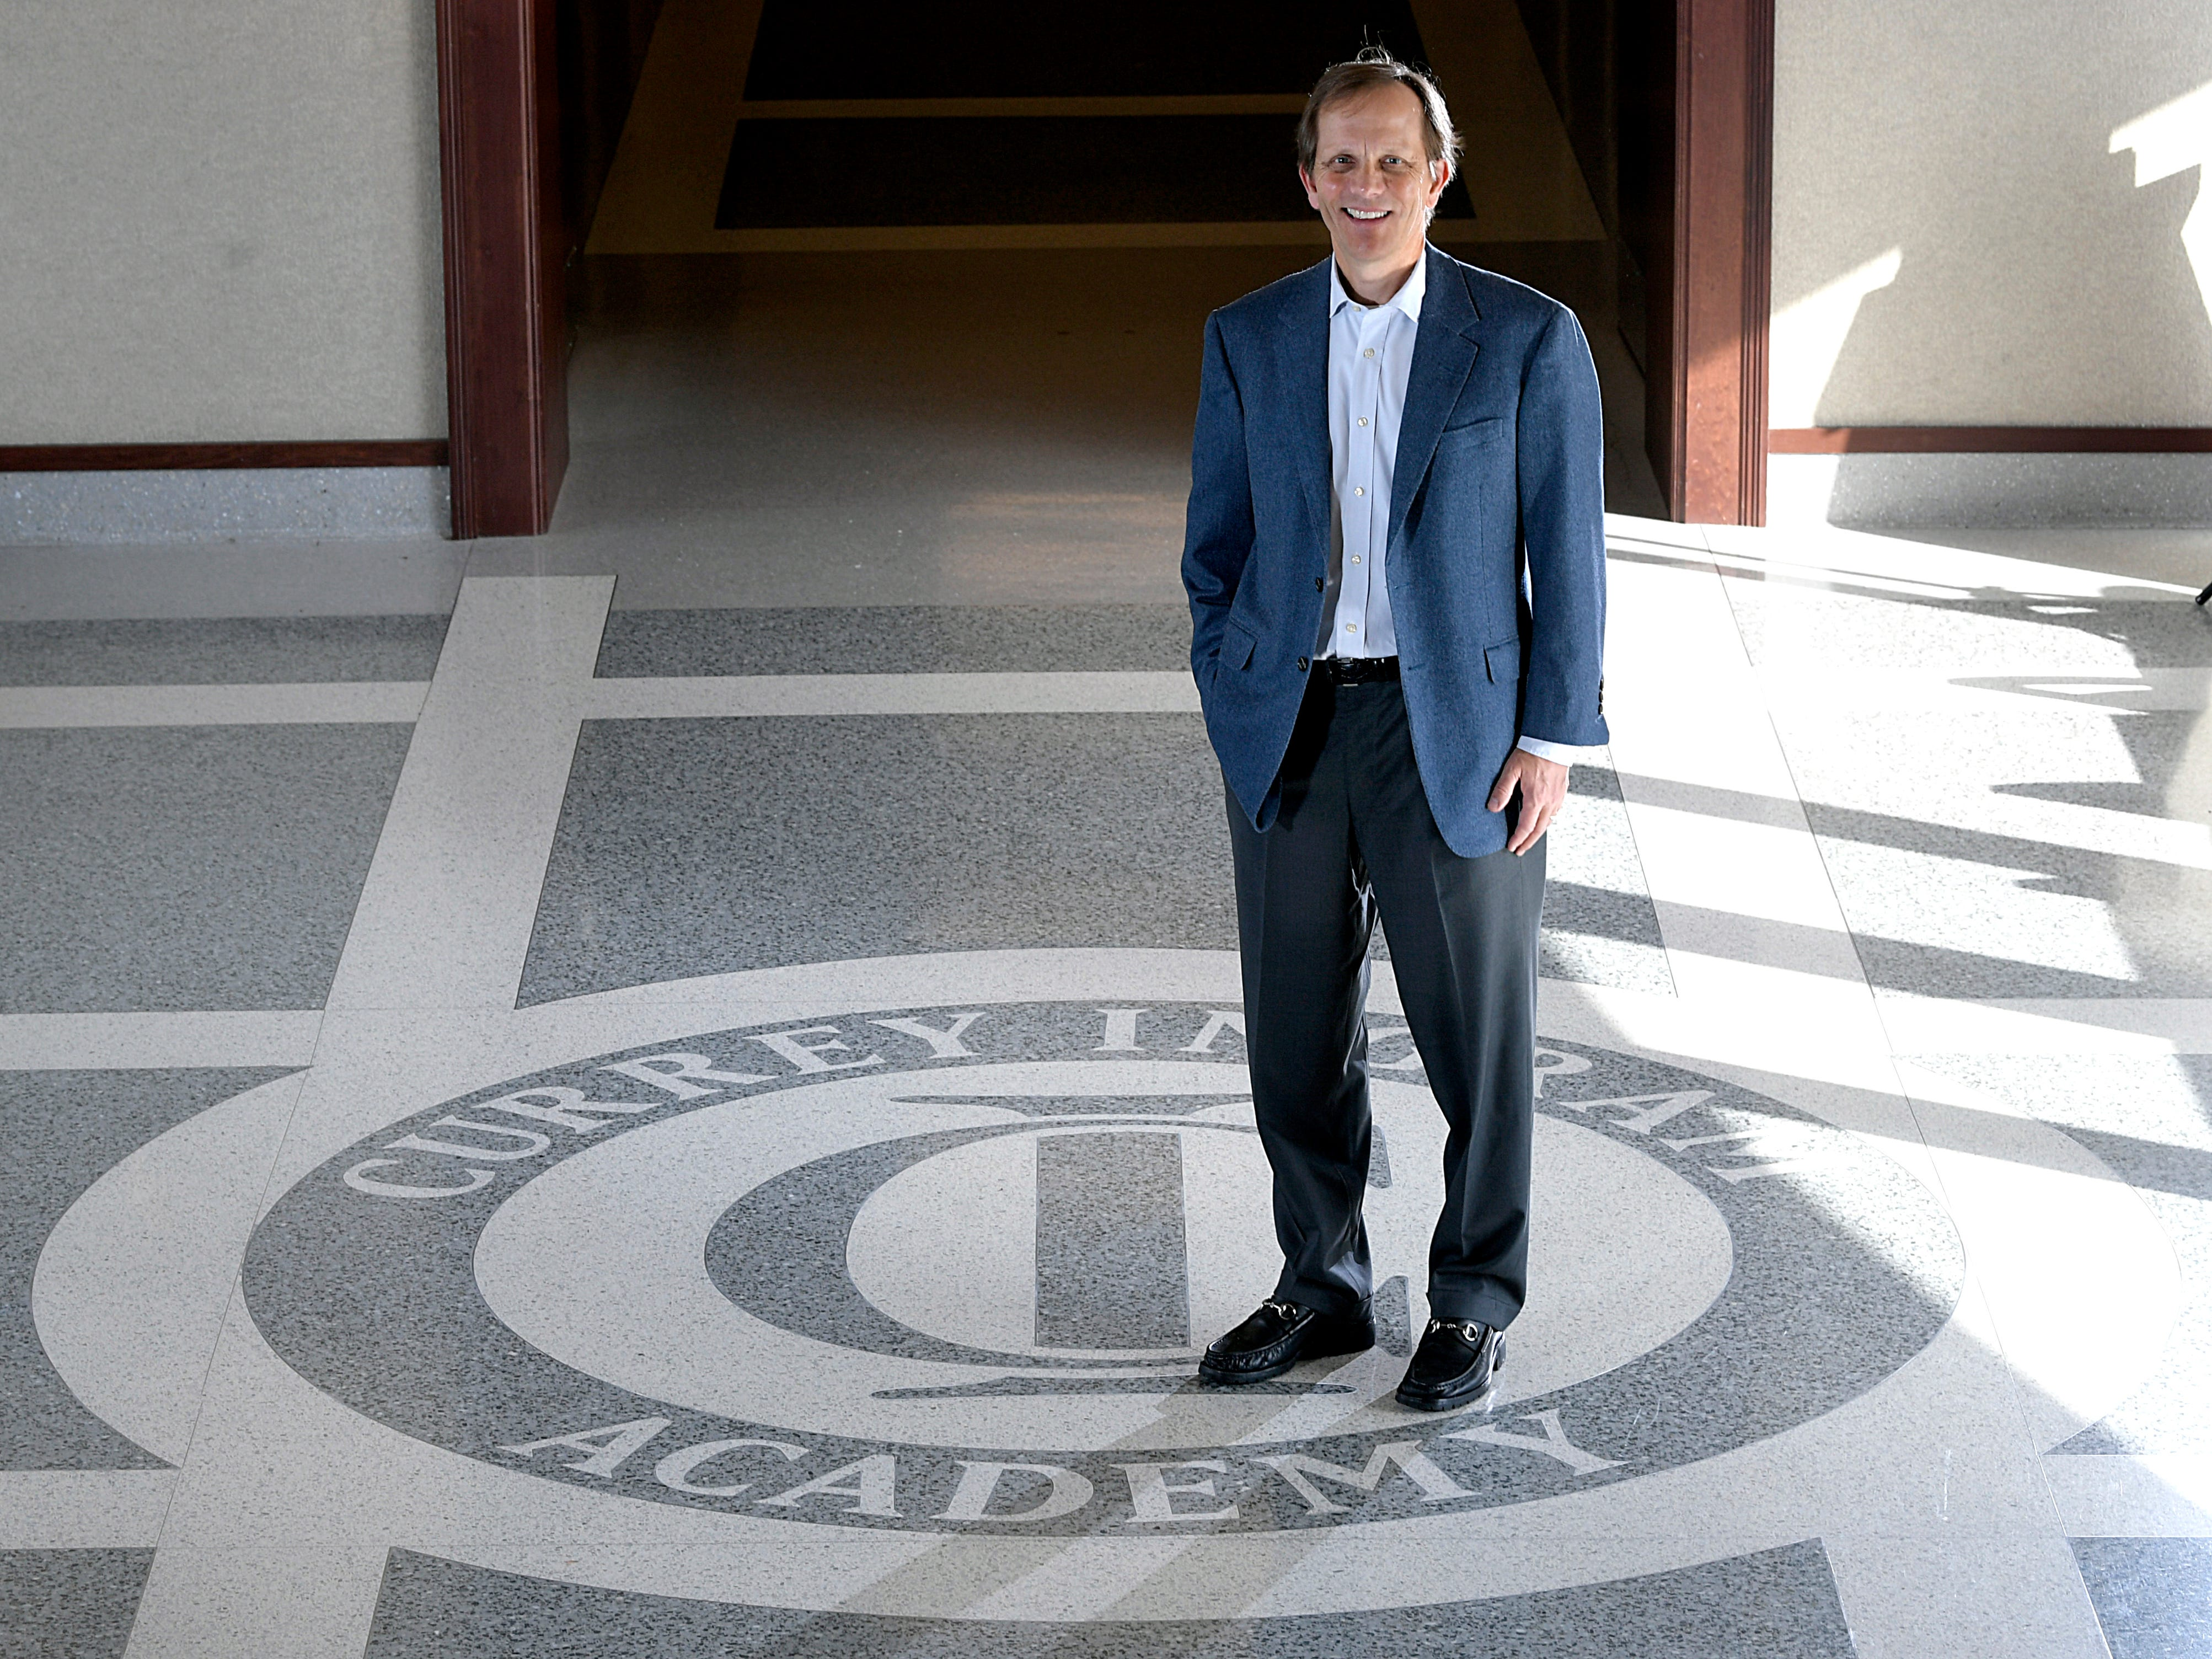 John Ingram stands in the hallway of Currey Ingram Academy in Brentwood on Jan. 8, 2019.  Ingram and his wife, Stephanie Currey Ingram, helped financially build the private school's 83-acre campus in 2002.